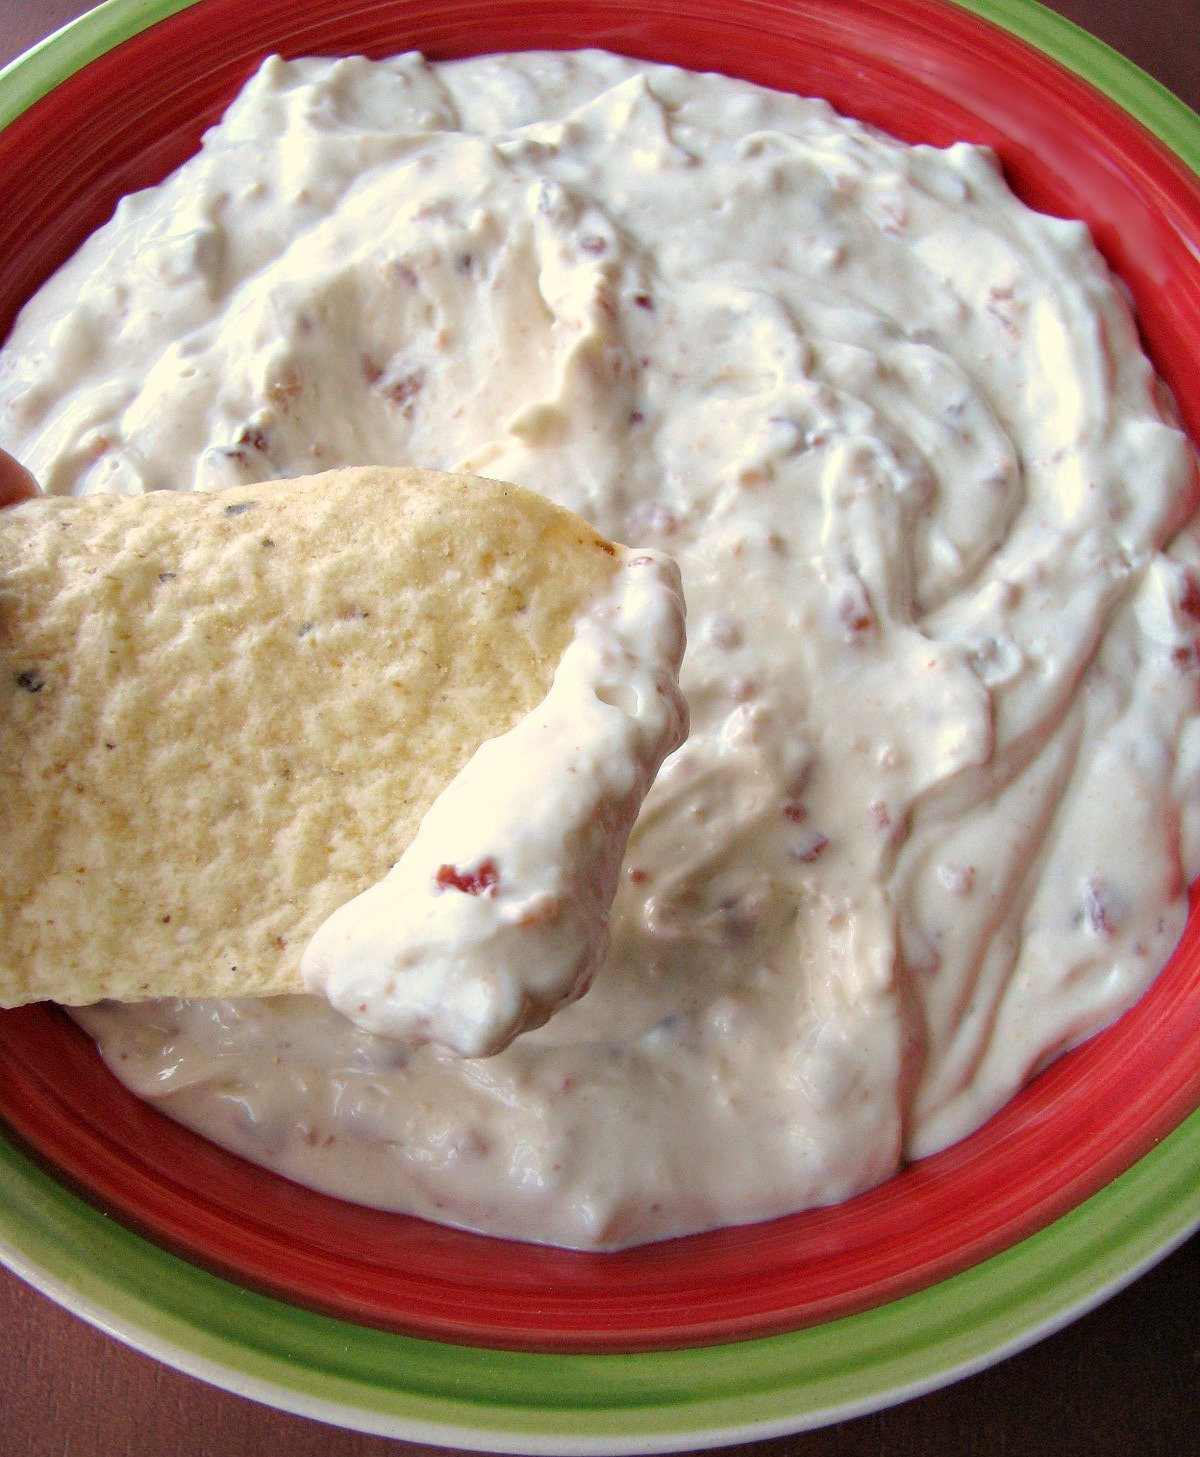 Homemade Bacon Horseradish Dip that tastes just like the popular brand! Made with real bacon, horseradish sauce, and sour cream, it's easy to make and full of flavor.